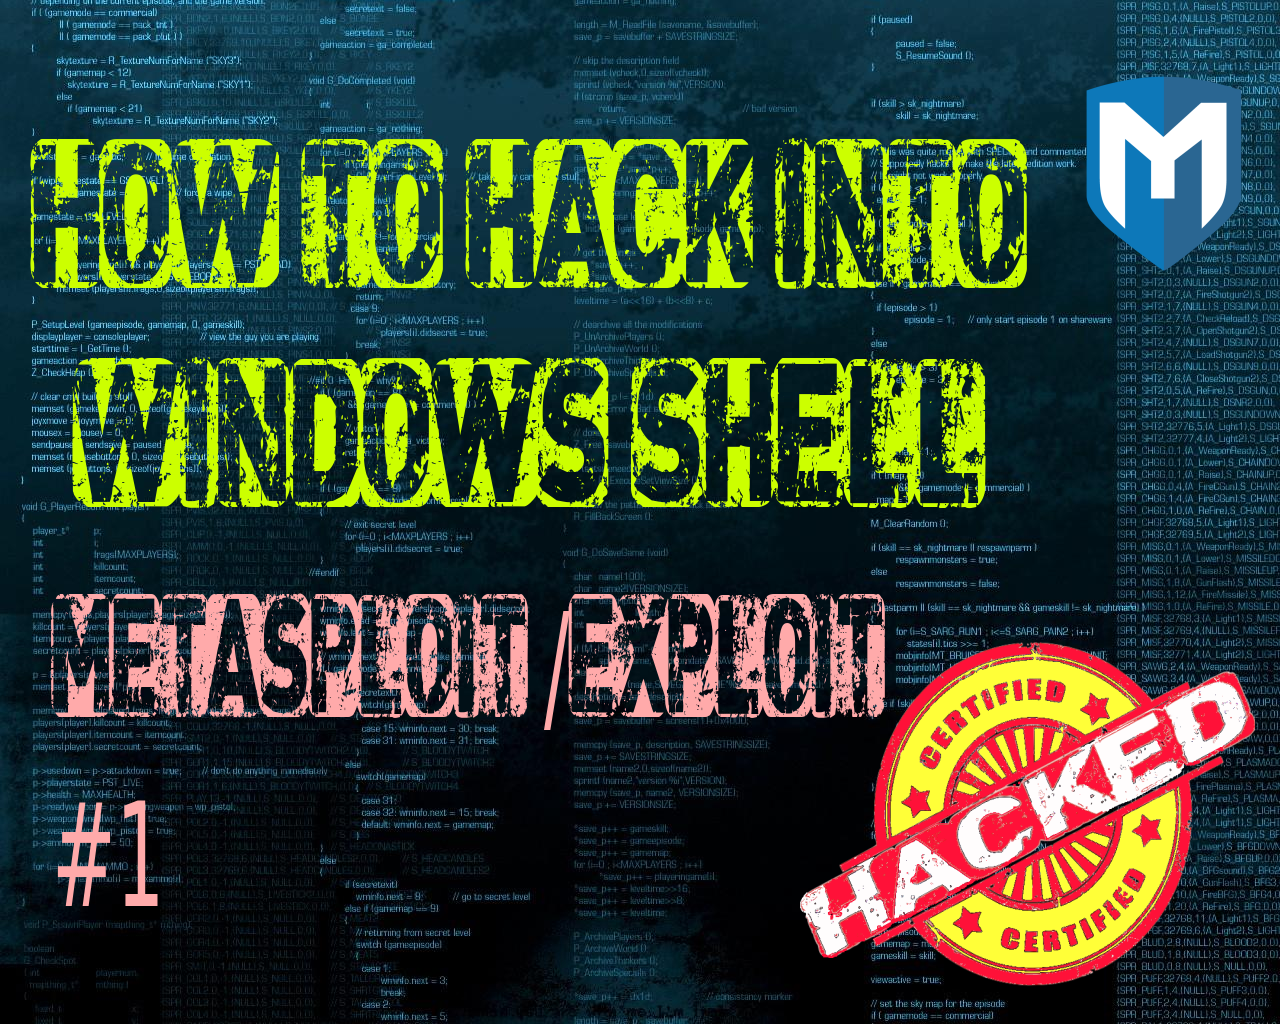 Windows command prompt nmap - Metasploit Exploit 1 Introduction To Metasploit And How To Hack Windows Command Prompt Using Metasploit Framework